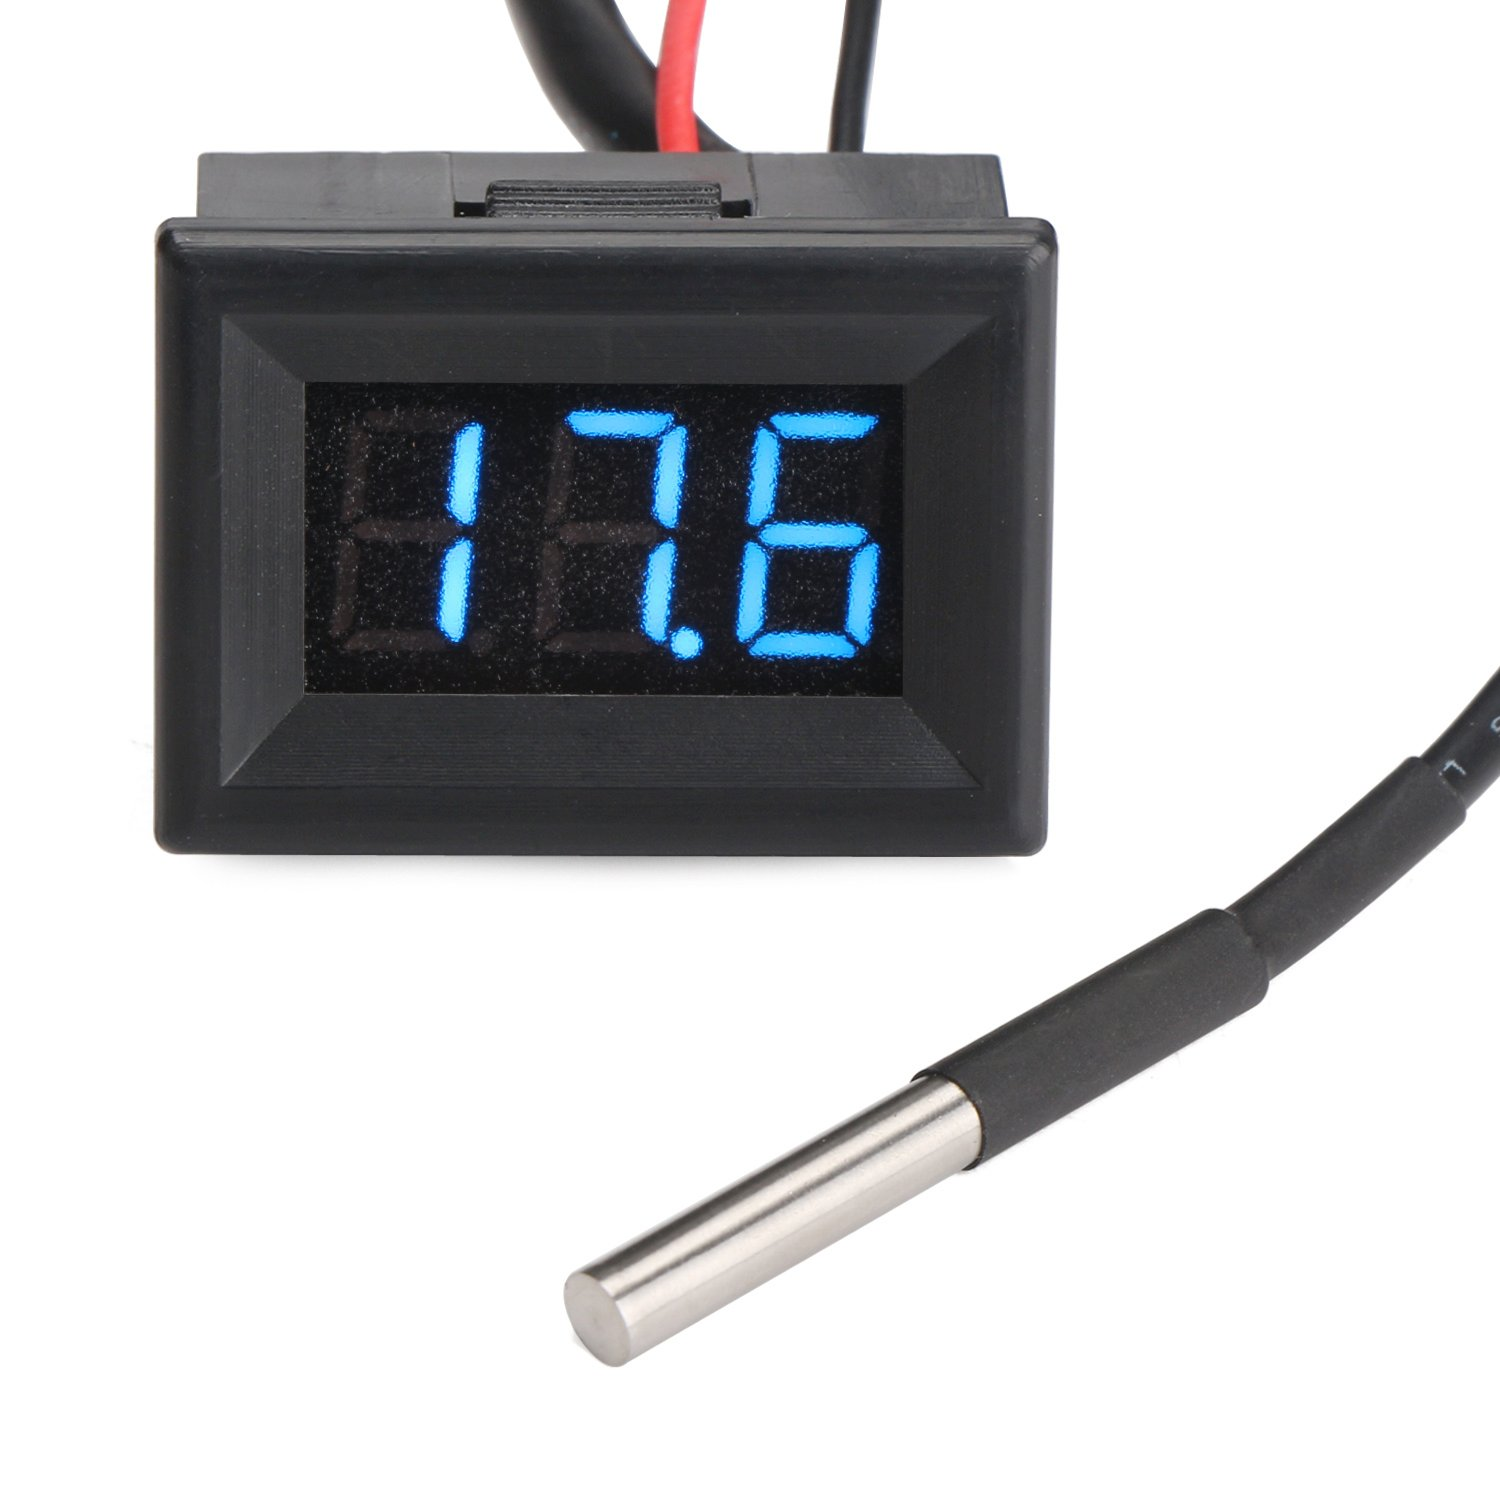 DROK 100096 Micro LED Digital -55 to 125℃ Temperature Meter Gauge Panel DC 7-30V 12V/24V Temp Tester Monitor with Bright Blue Digital Display and DS18B20 Waterproof Sensor Probe